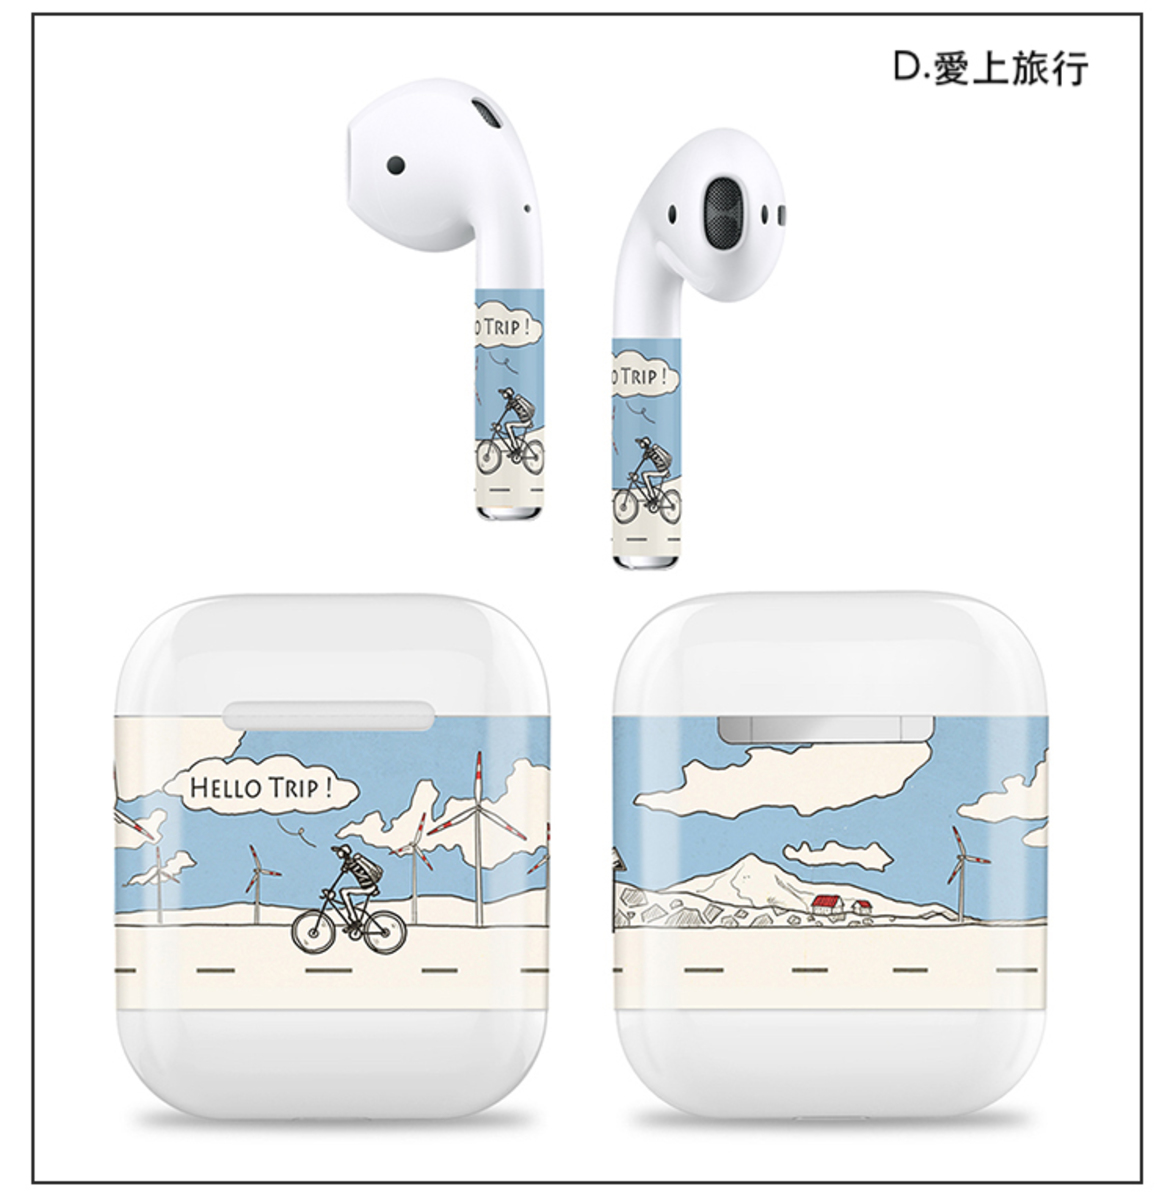 AhaStyle Decal Skins Sticker for Apple Airpods Style D